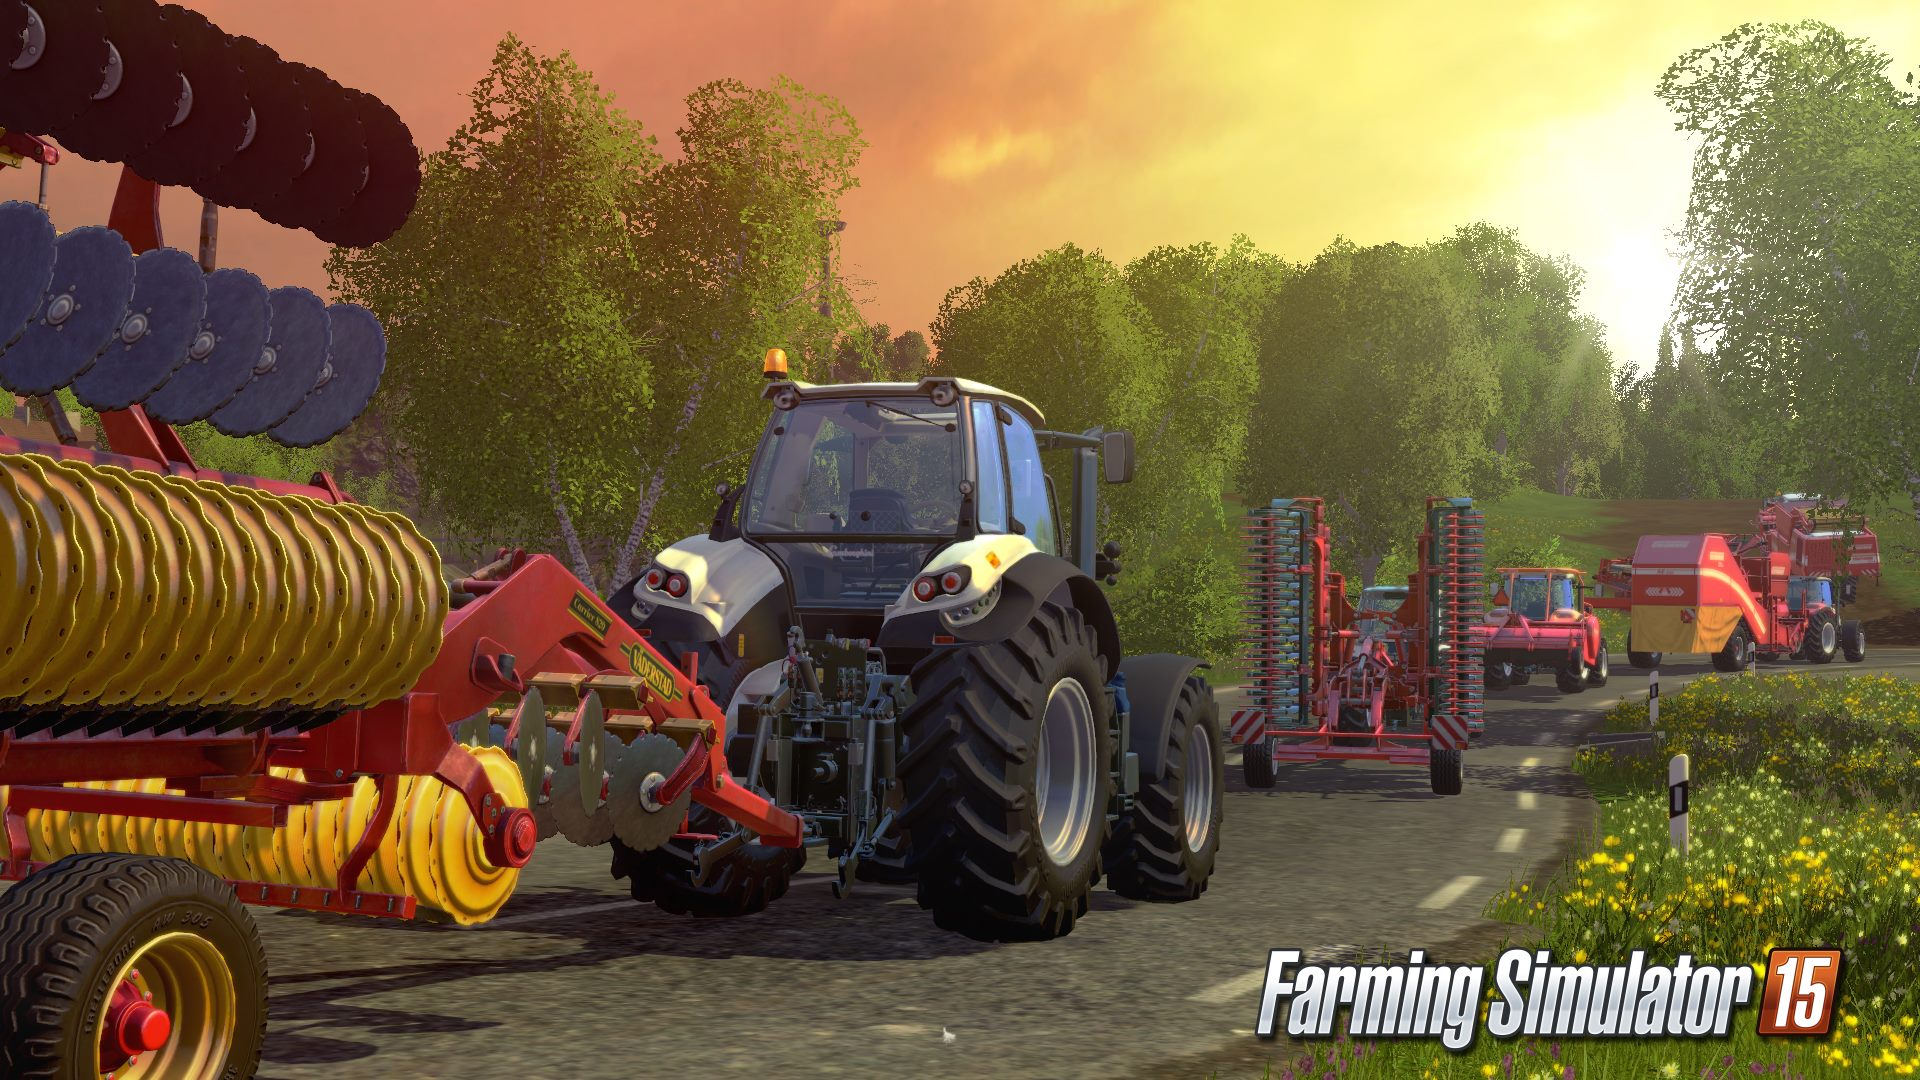 Top 30 Best Farming Simulator Mods - TopBestPics com